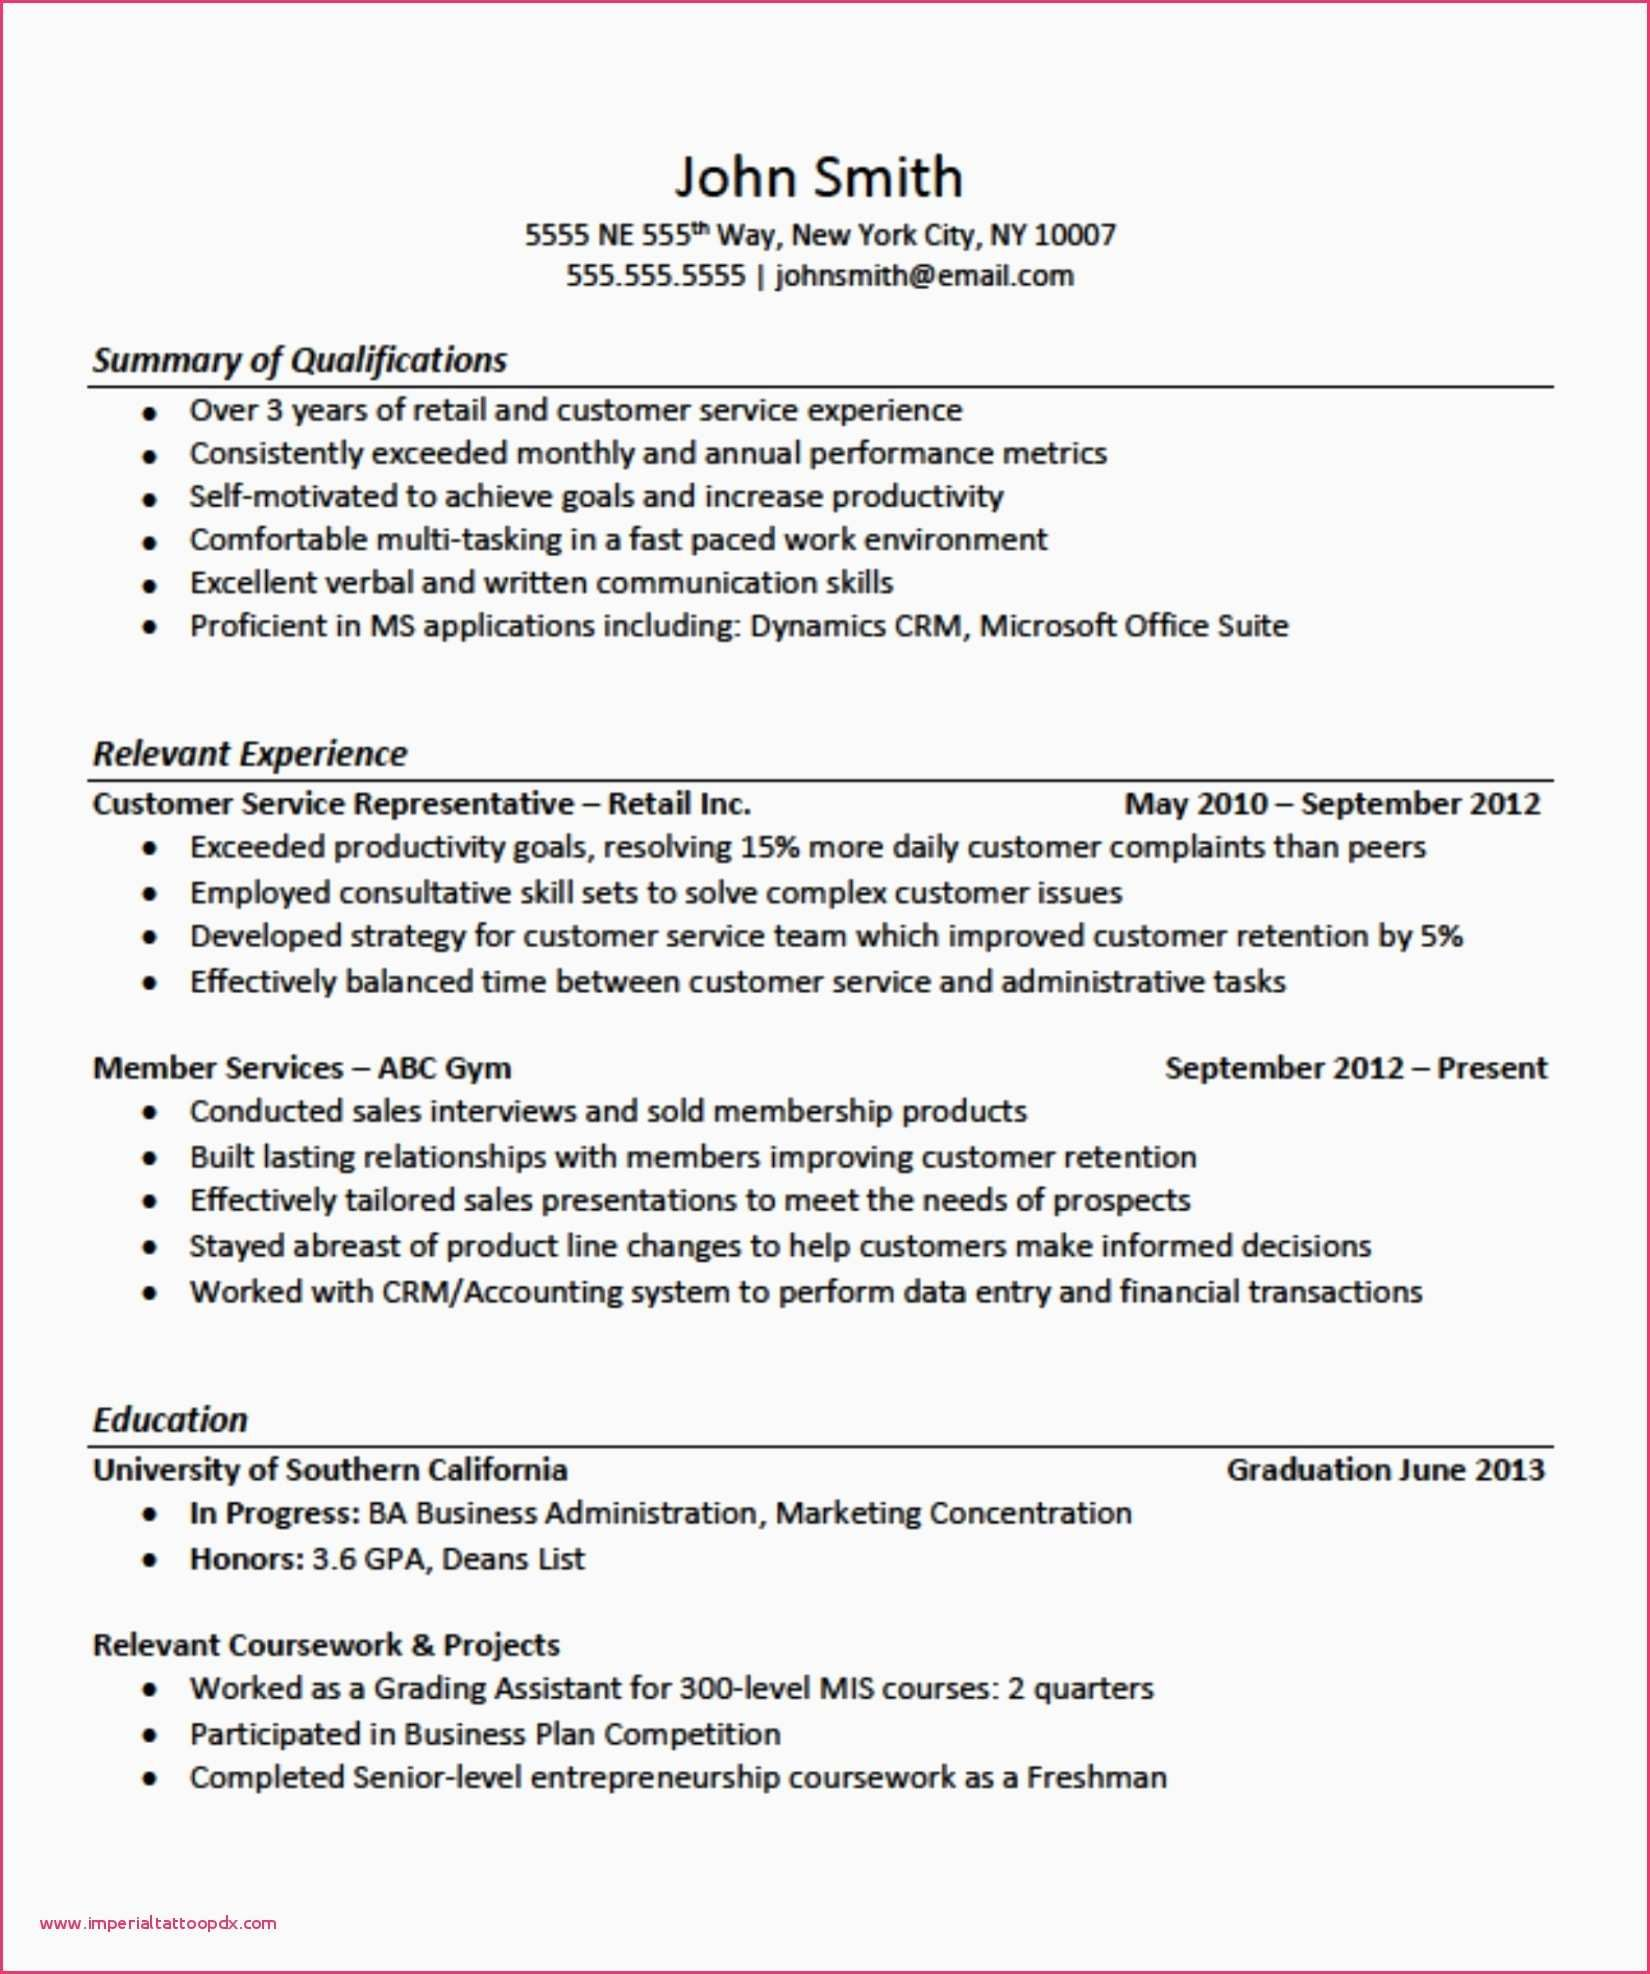 77 Elegant Image Of Sample Resume For Professional Accountant Check More At Https Www Ourpetscrawley Com 77 Elegant Image Of Sample Resume For Professional Ac